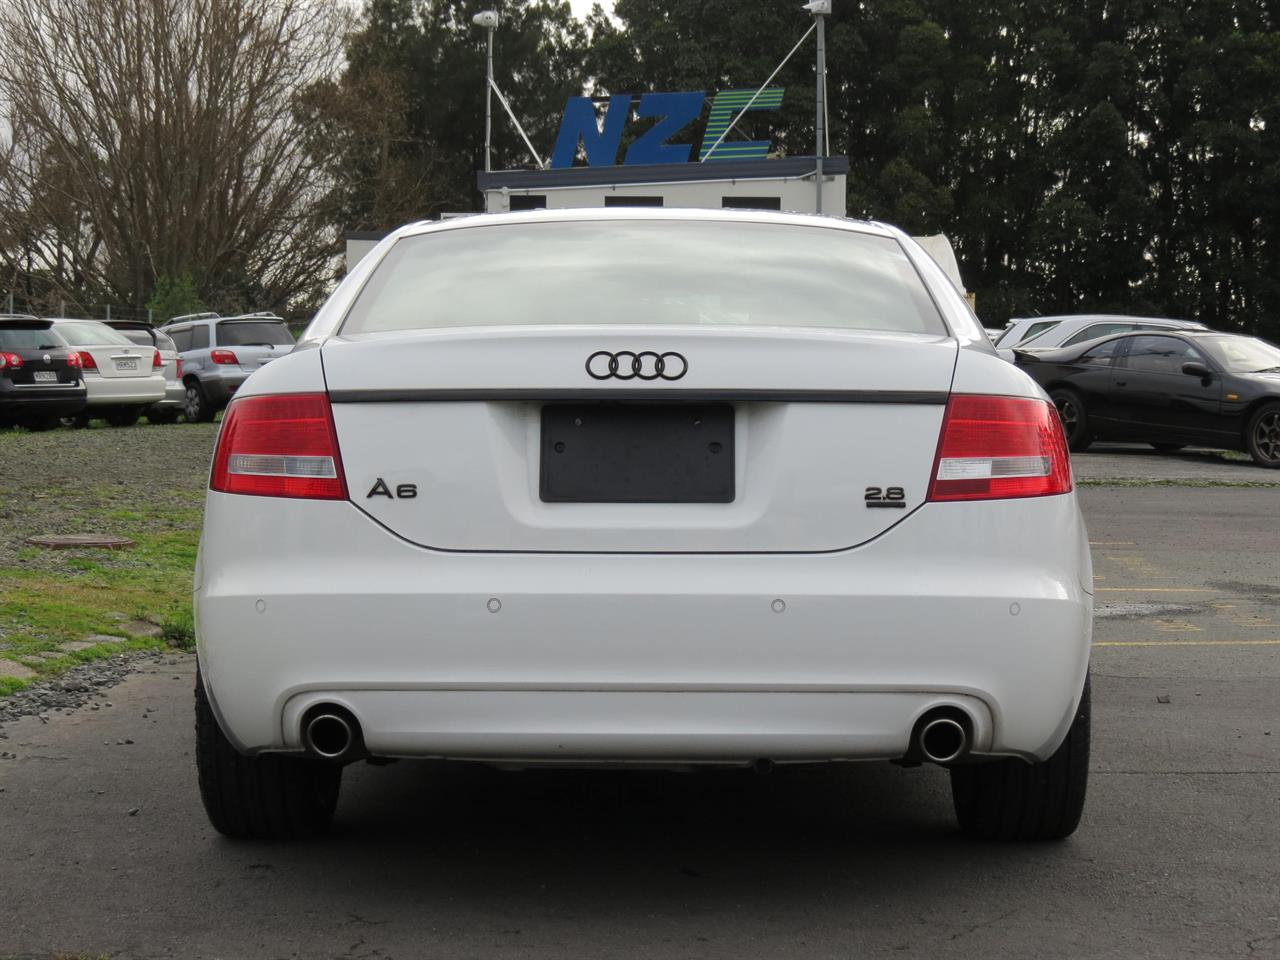 2008 Audi A6 | only $48 weekly